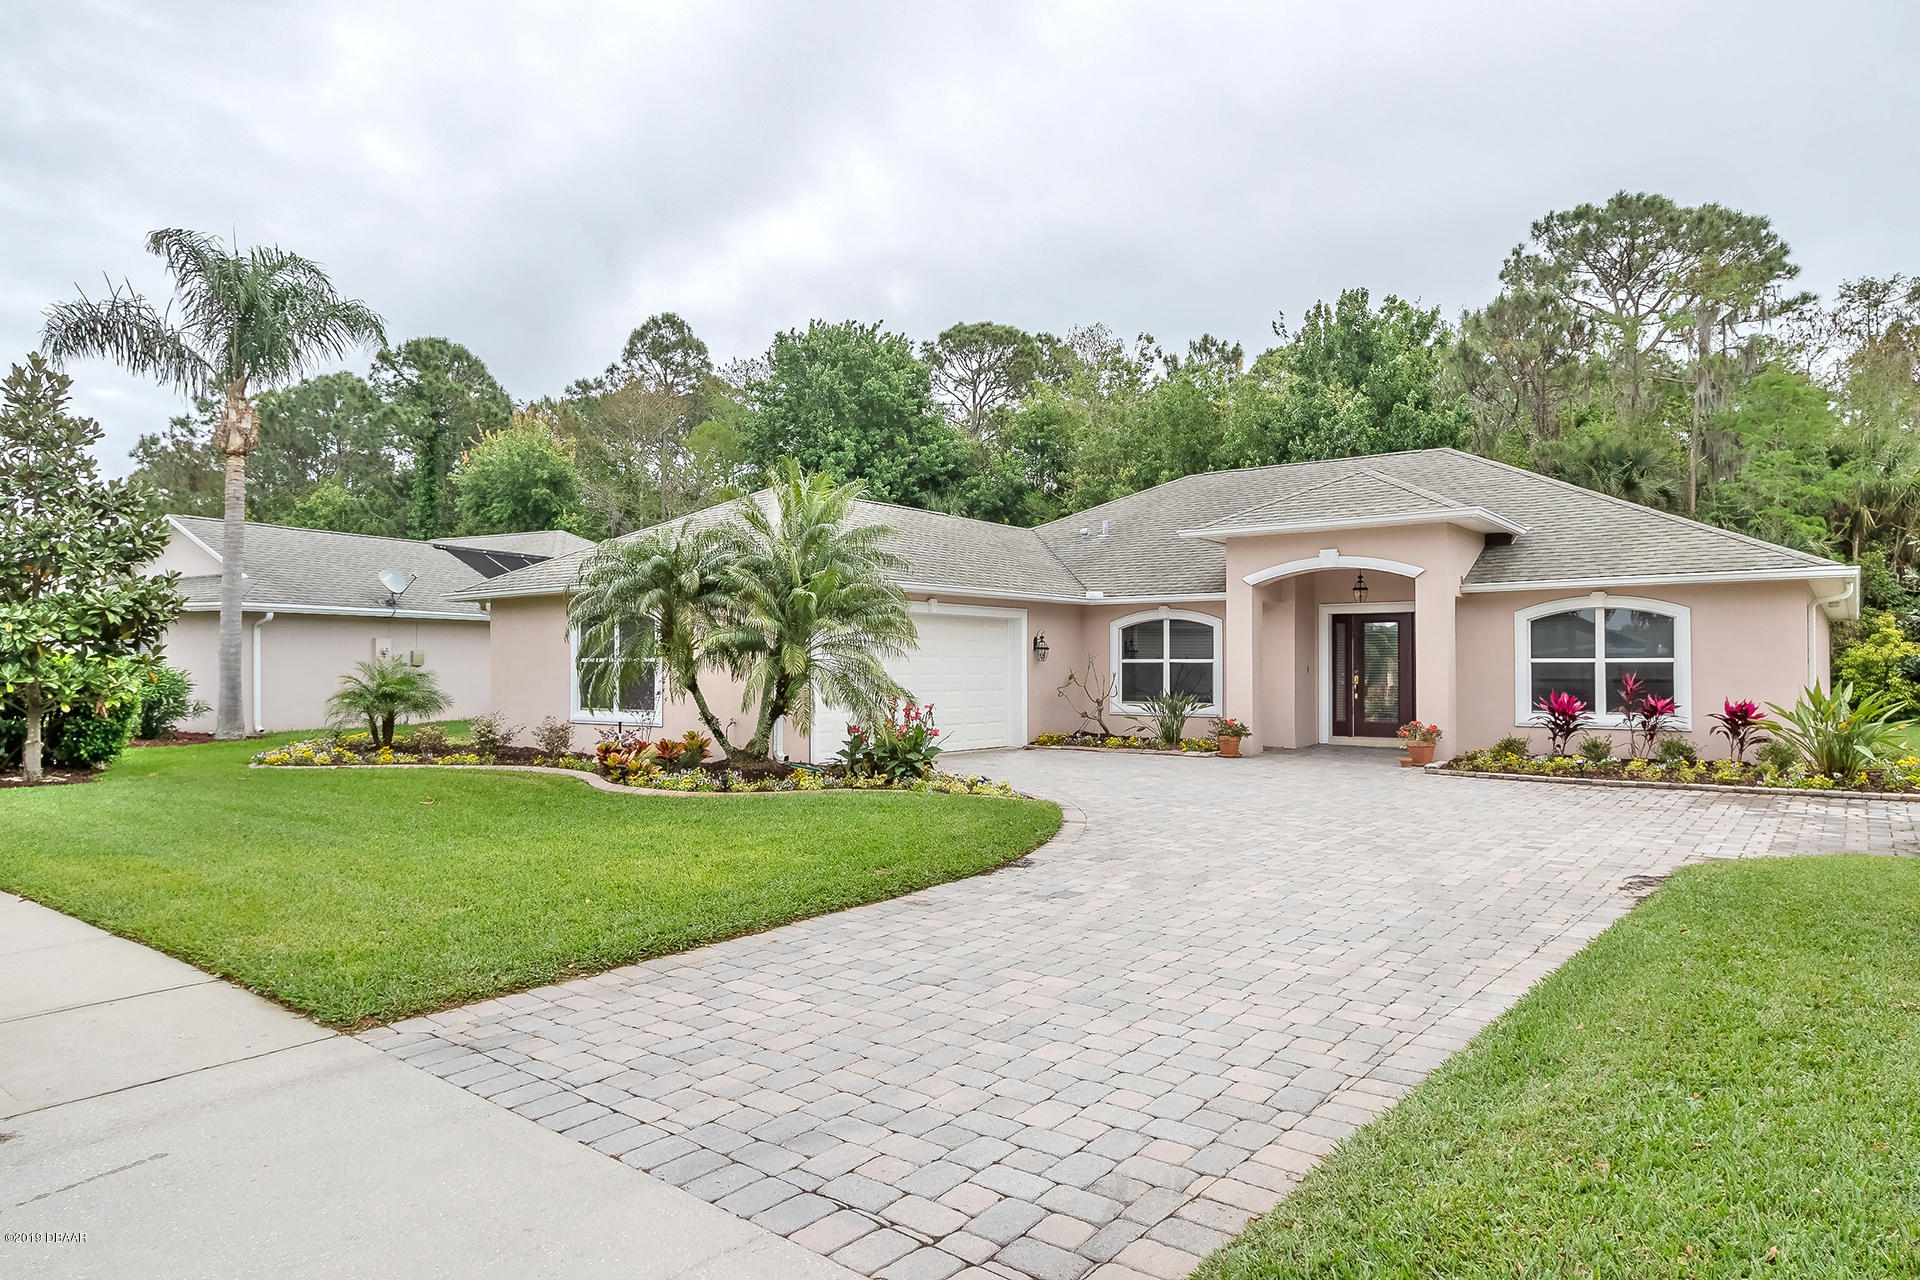 Photo of 4275 Mayfair Lane, Port Orange, FL 32129